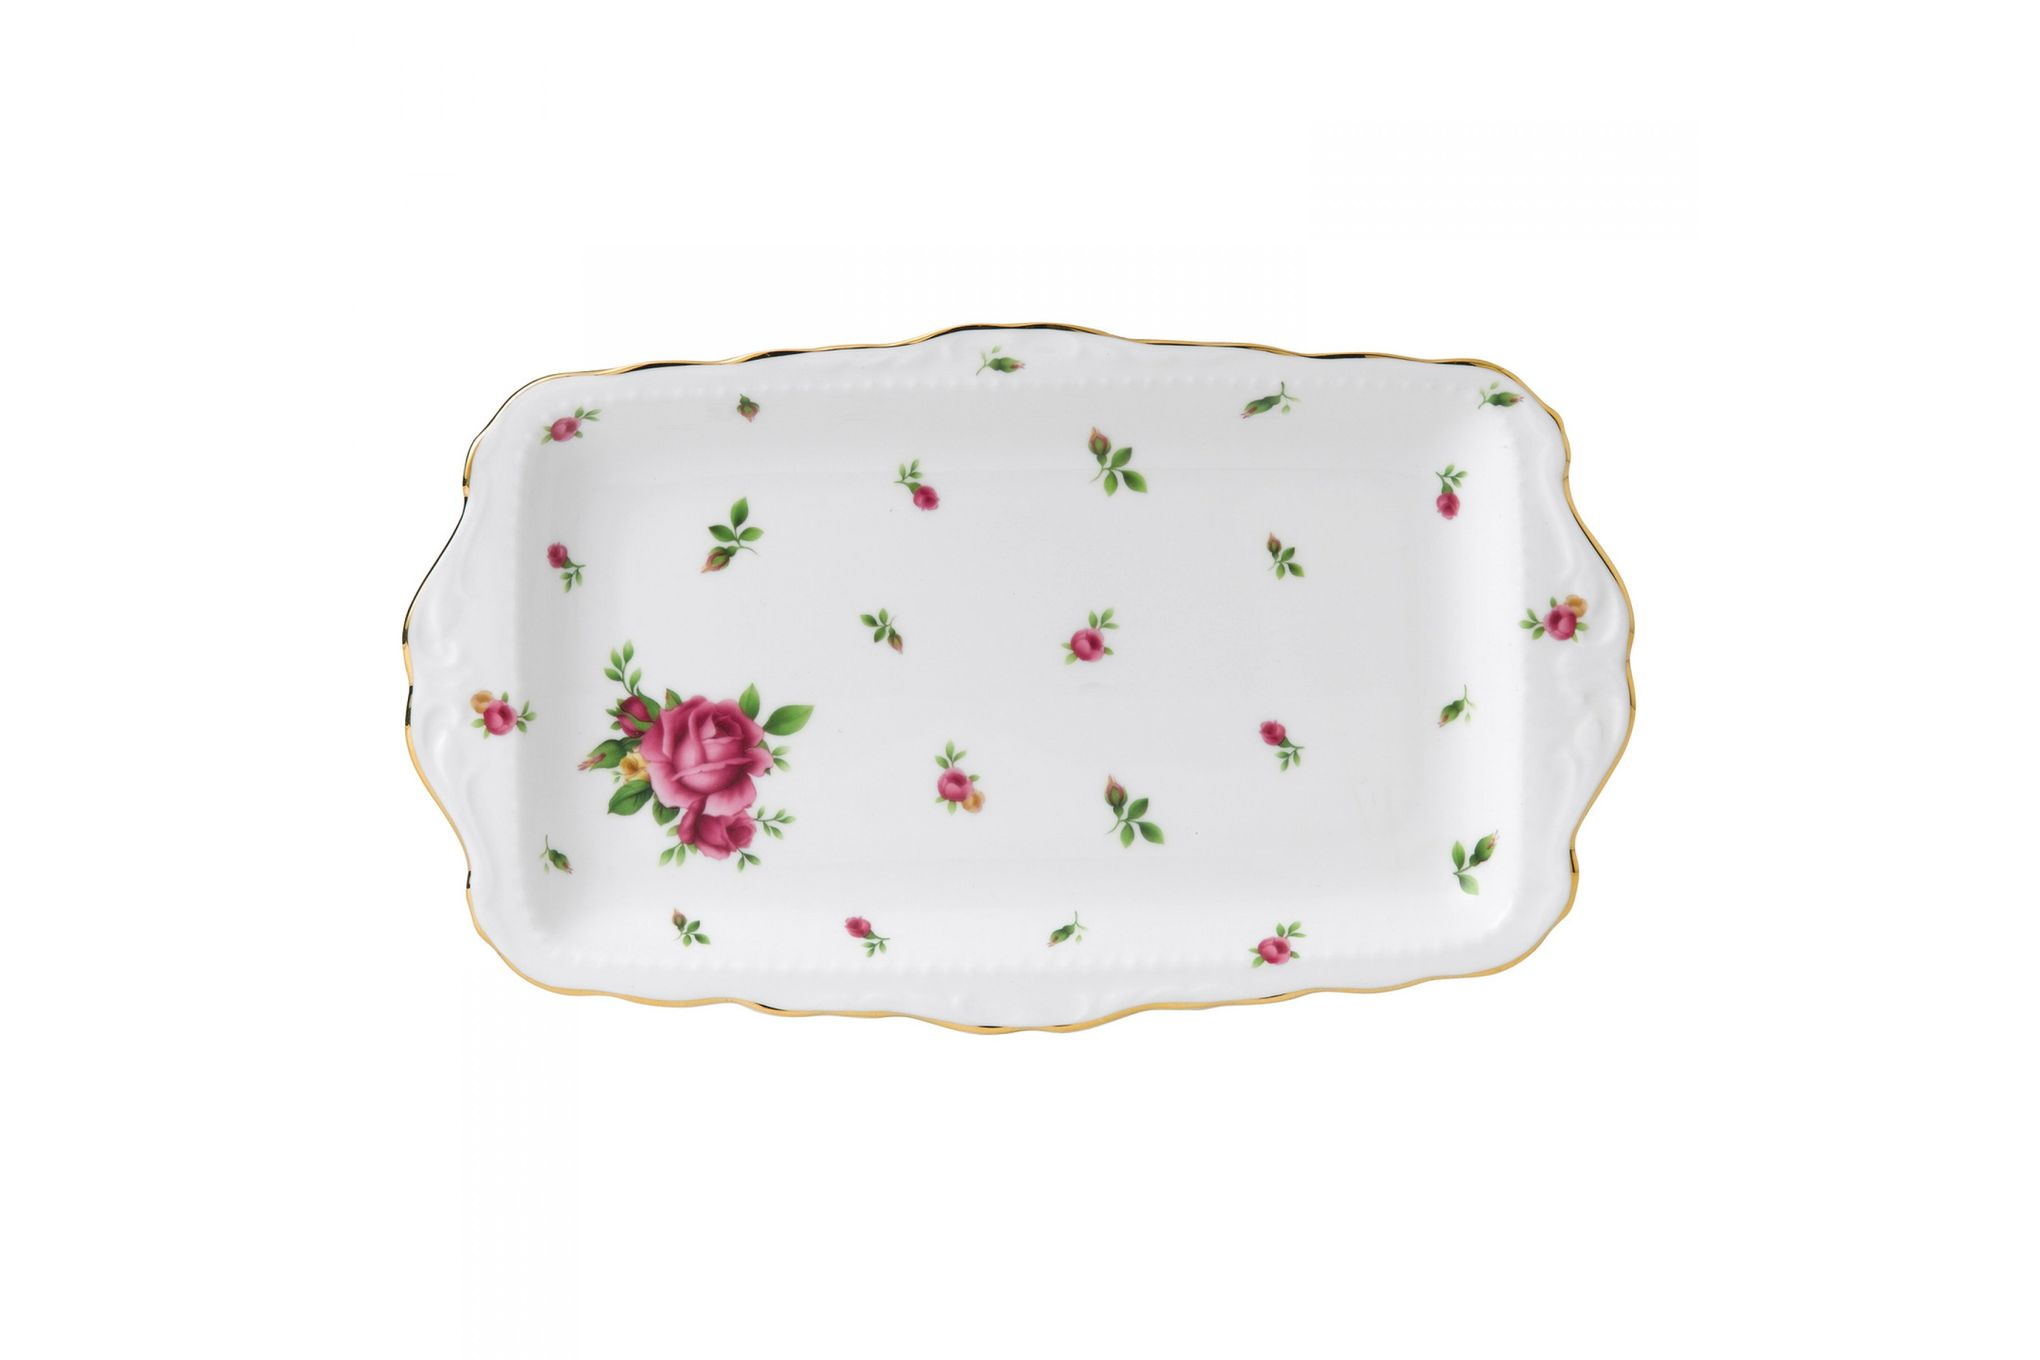 Royal Albert New Country Roses White Sandwich Tray Boxed thumb 1